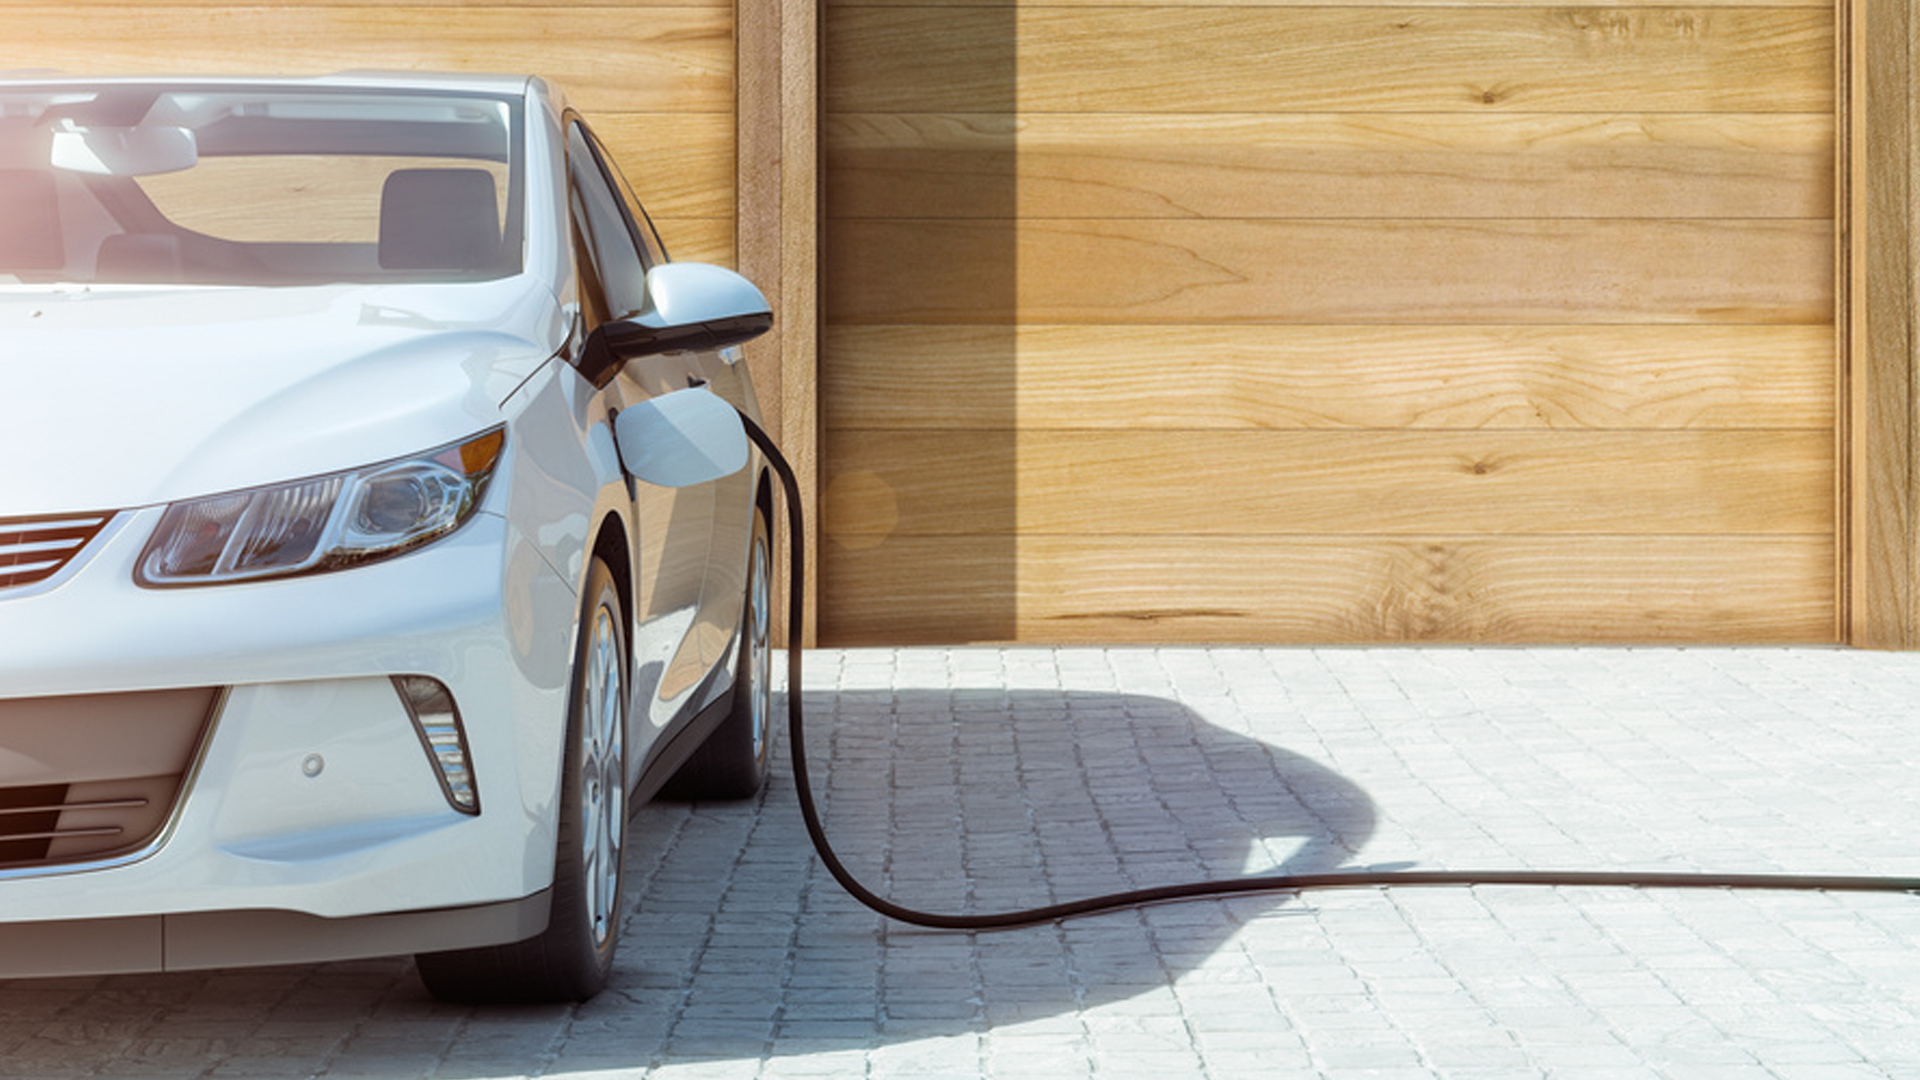 ARE ELECTRIC CAR GARAGES THE WAY OF THE FUTURE?